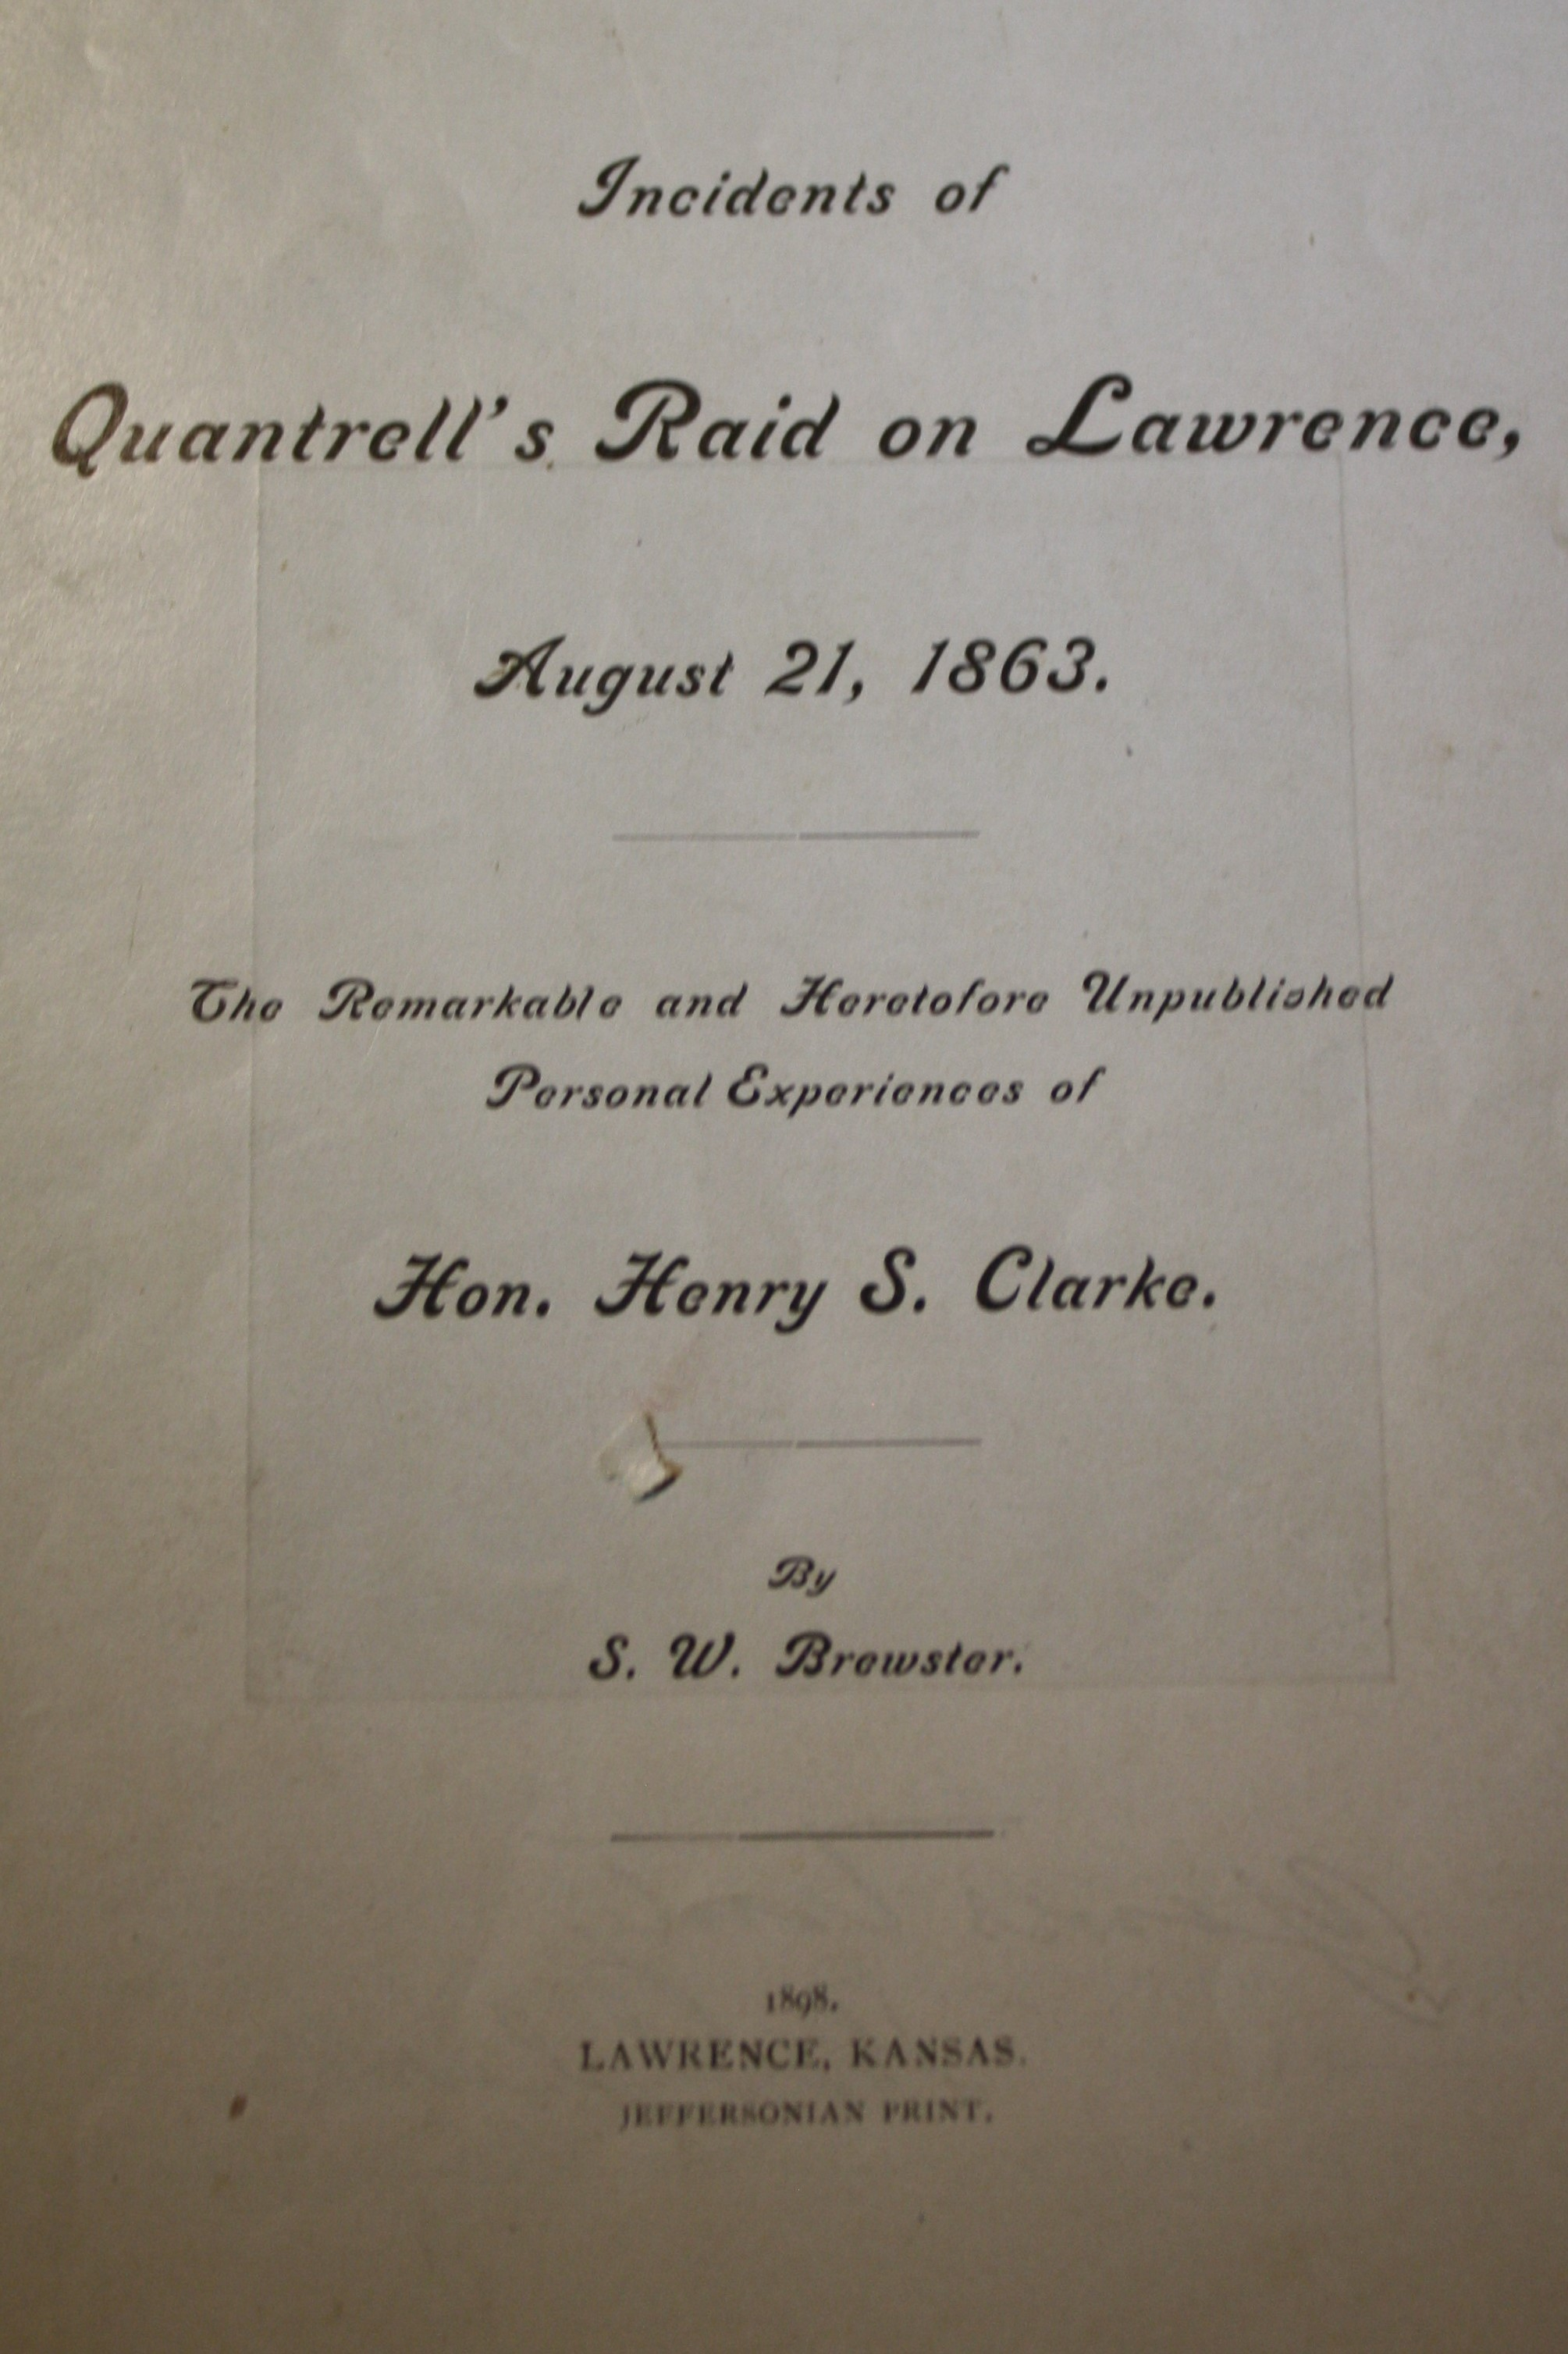 Image for Incidents of Quantrell's Raid on Lawrence August 21, 1863 The Remarkable and Heretofore Unpublished Personal Experiences of Hon. Henry S. Clarke